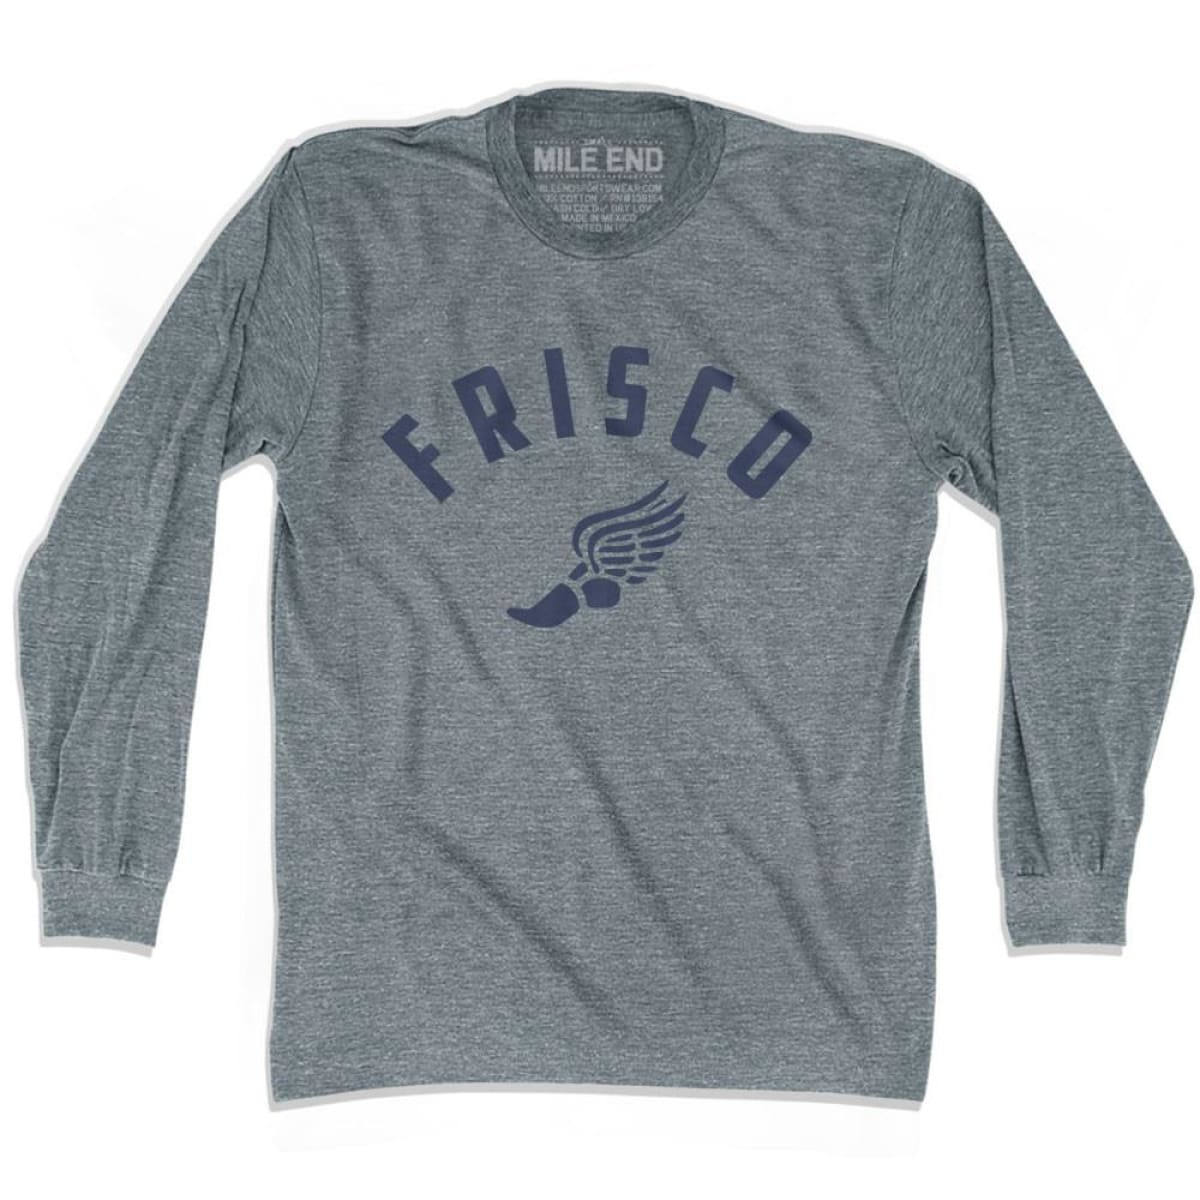 Frisco Track Long Sleeve T-shirt - Athletic Grey / Adult X-Small - Mile End Track